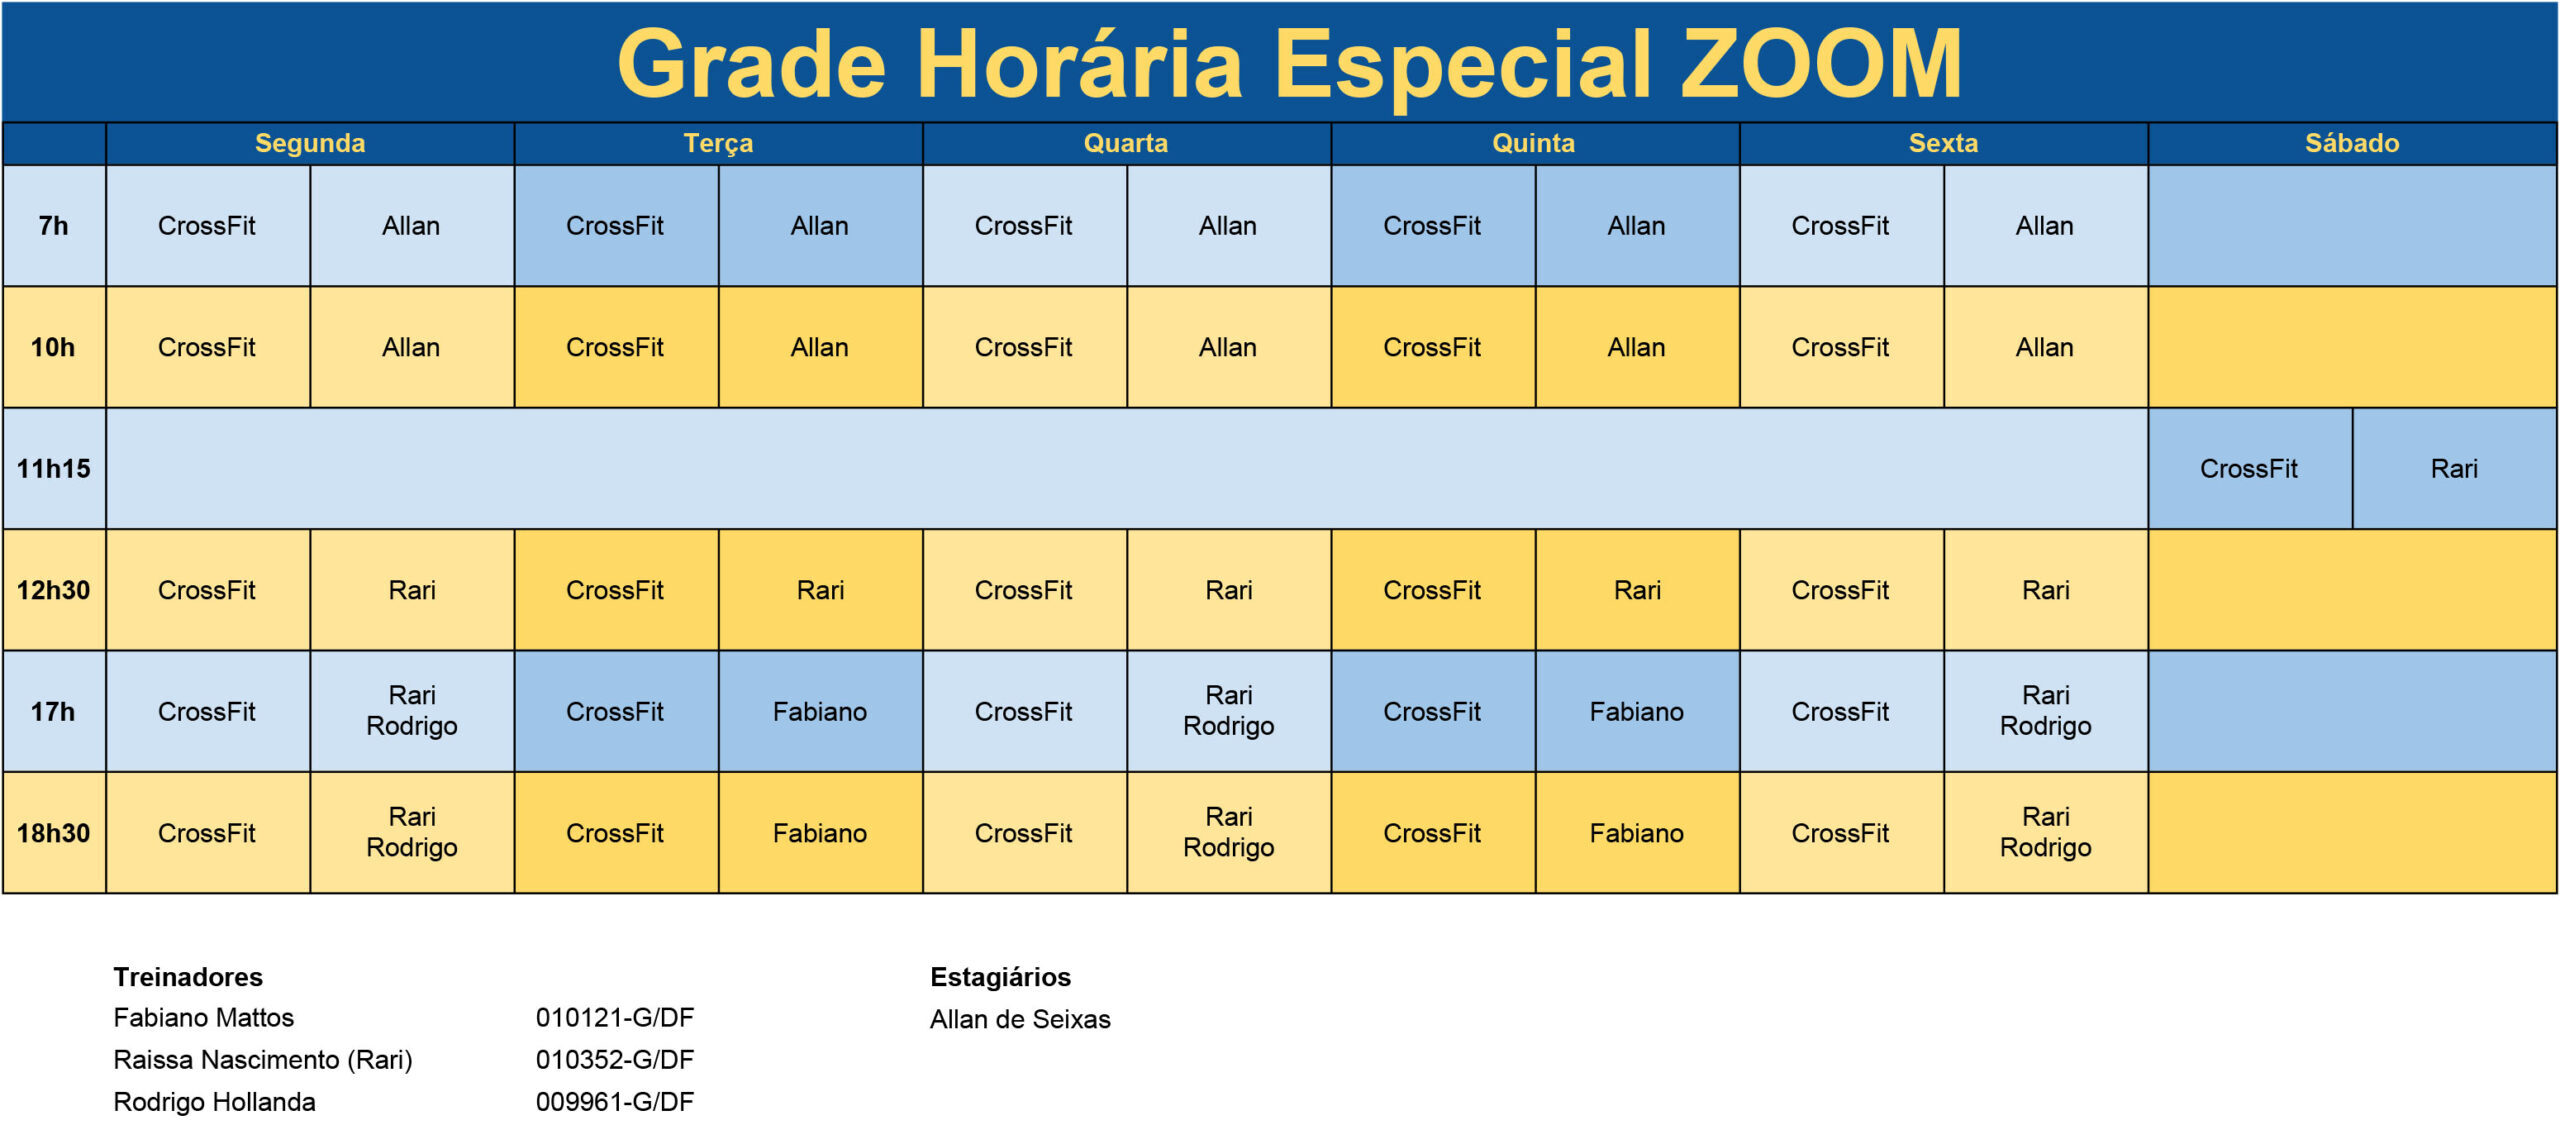 https://secureservercdn.net/166.62.108.196/a14.e77.myftpupload.com/wp-content/uploads/2020/07/Grade-Horária-On-Line-ZOOM-scaled-2560x1125.jpg